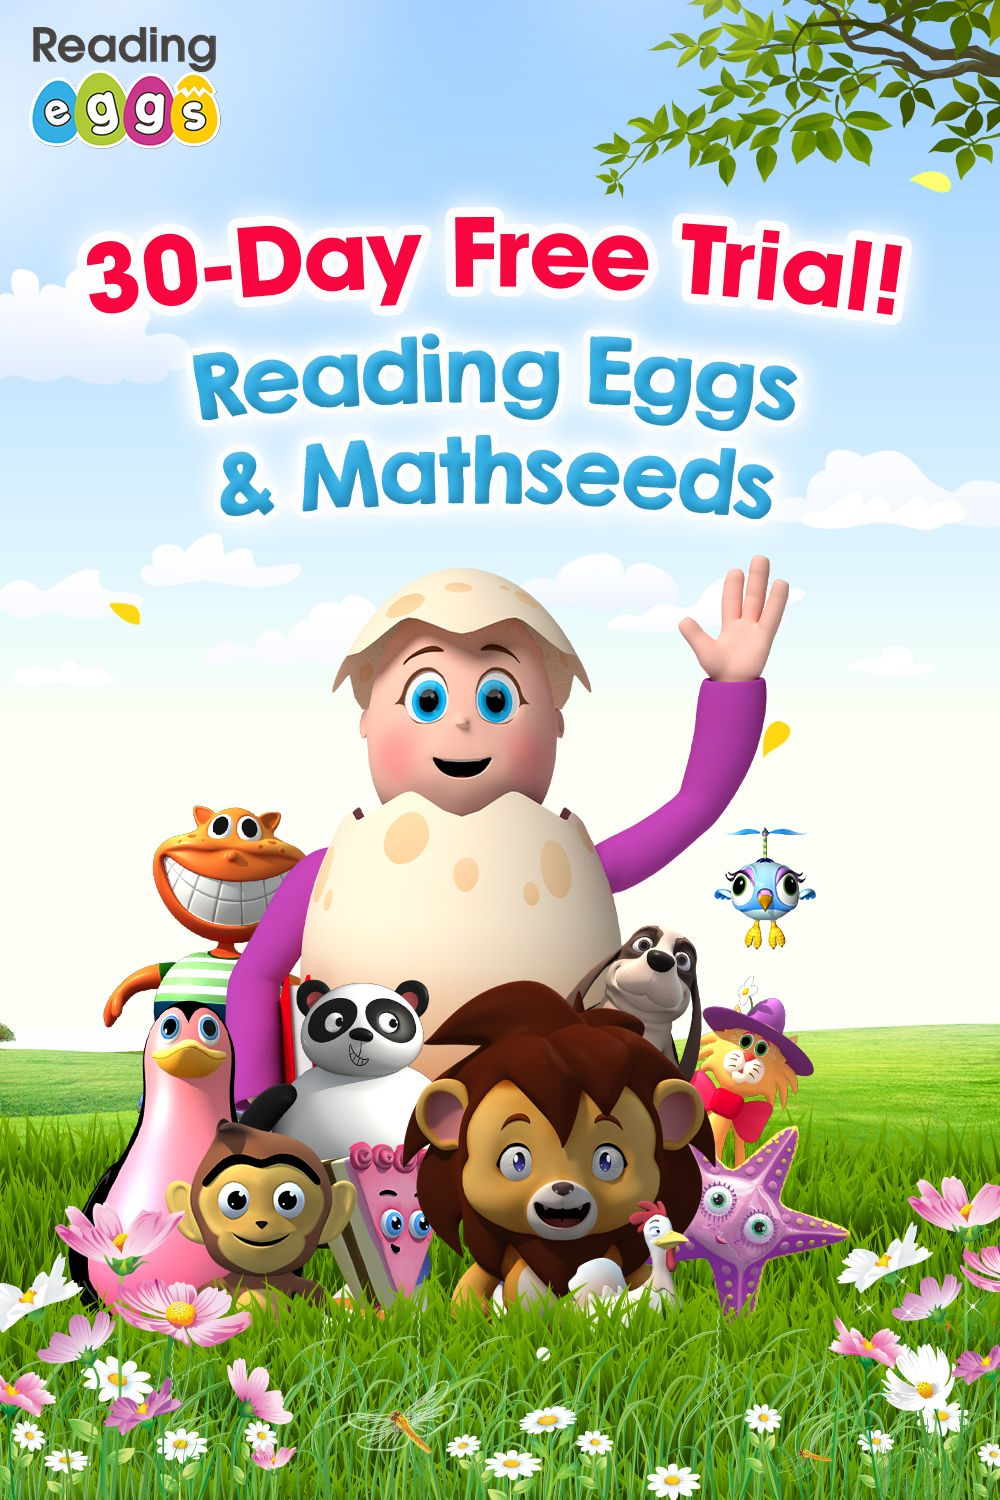 Learn To Read In 30 Days Free Learn To Read Teaching Kids Preschool Activities Is reading eggs free for teachers